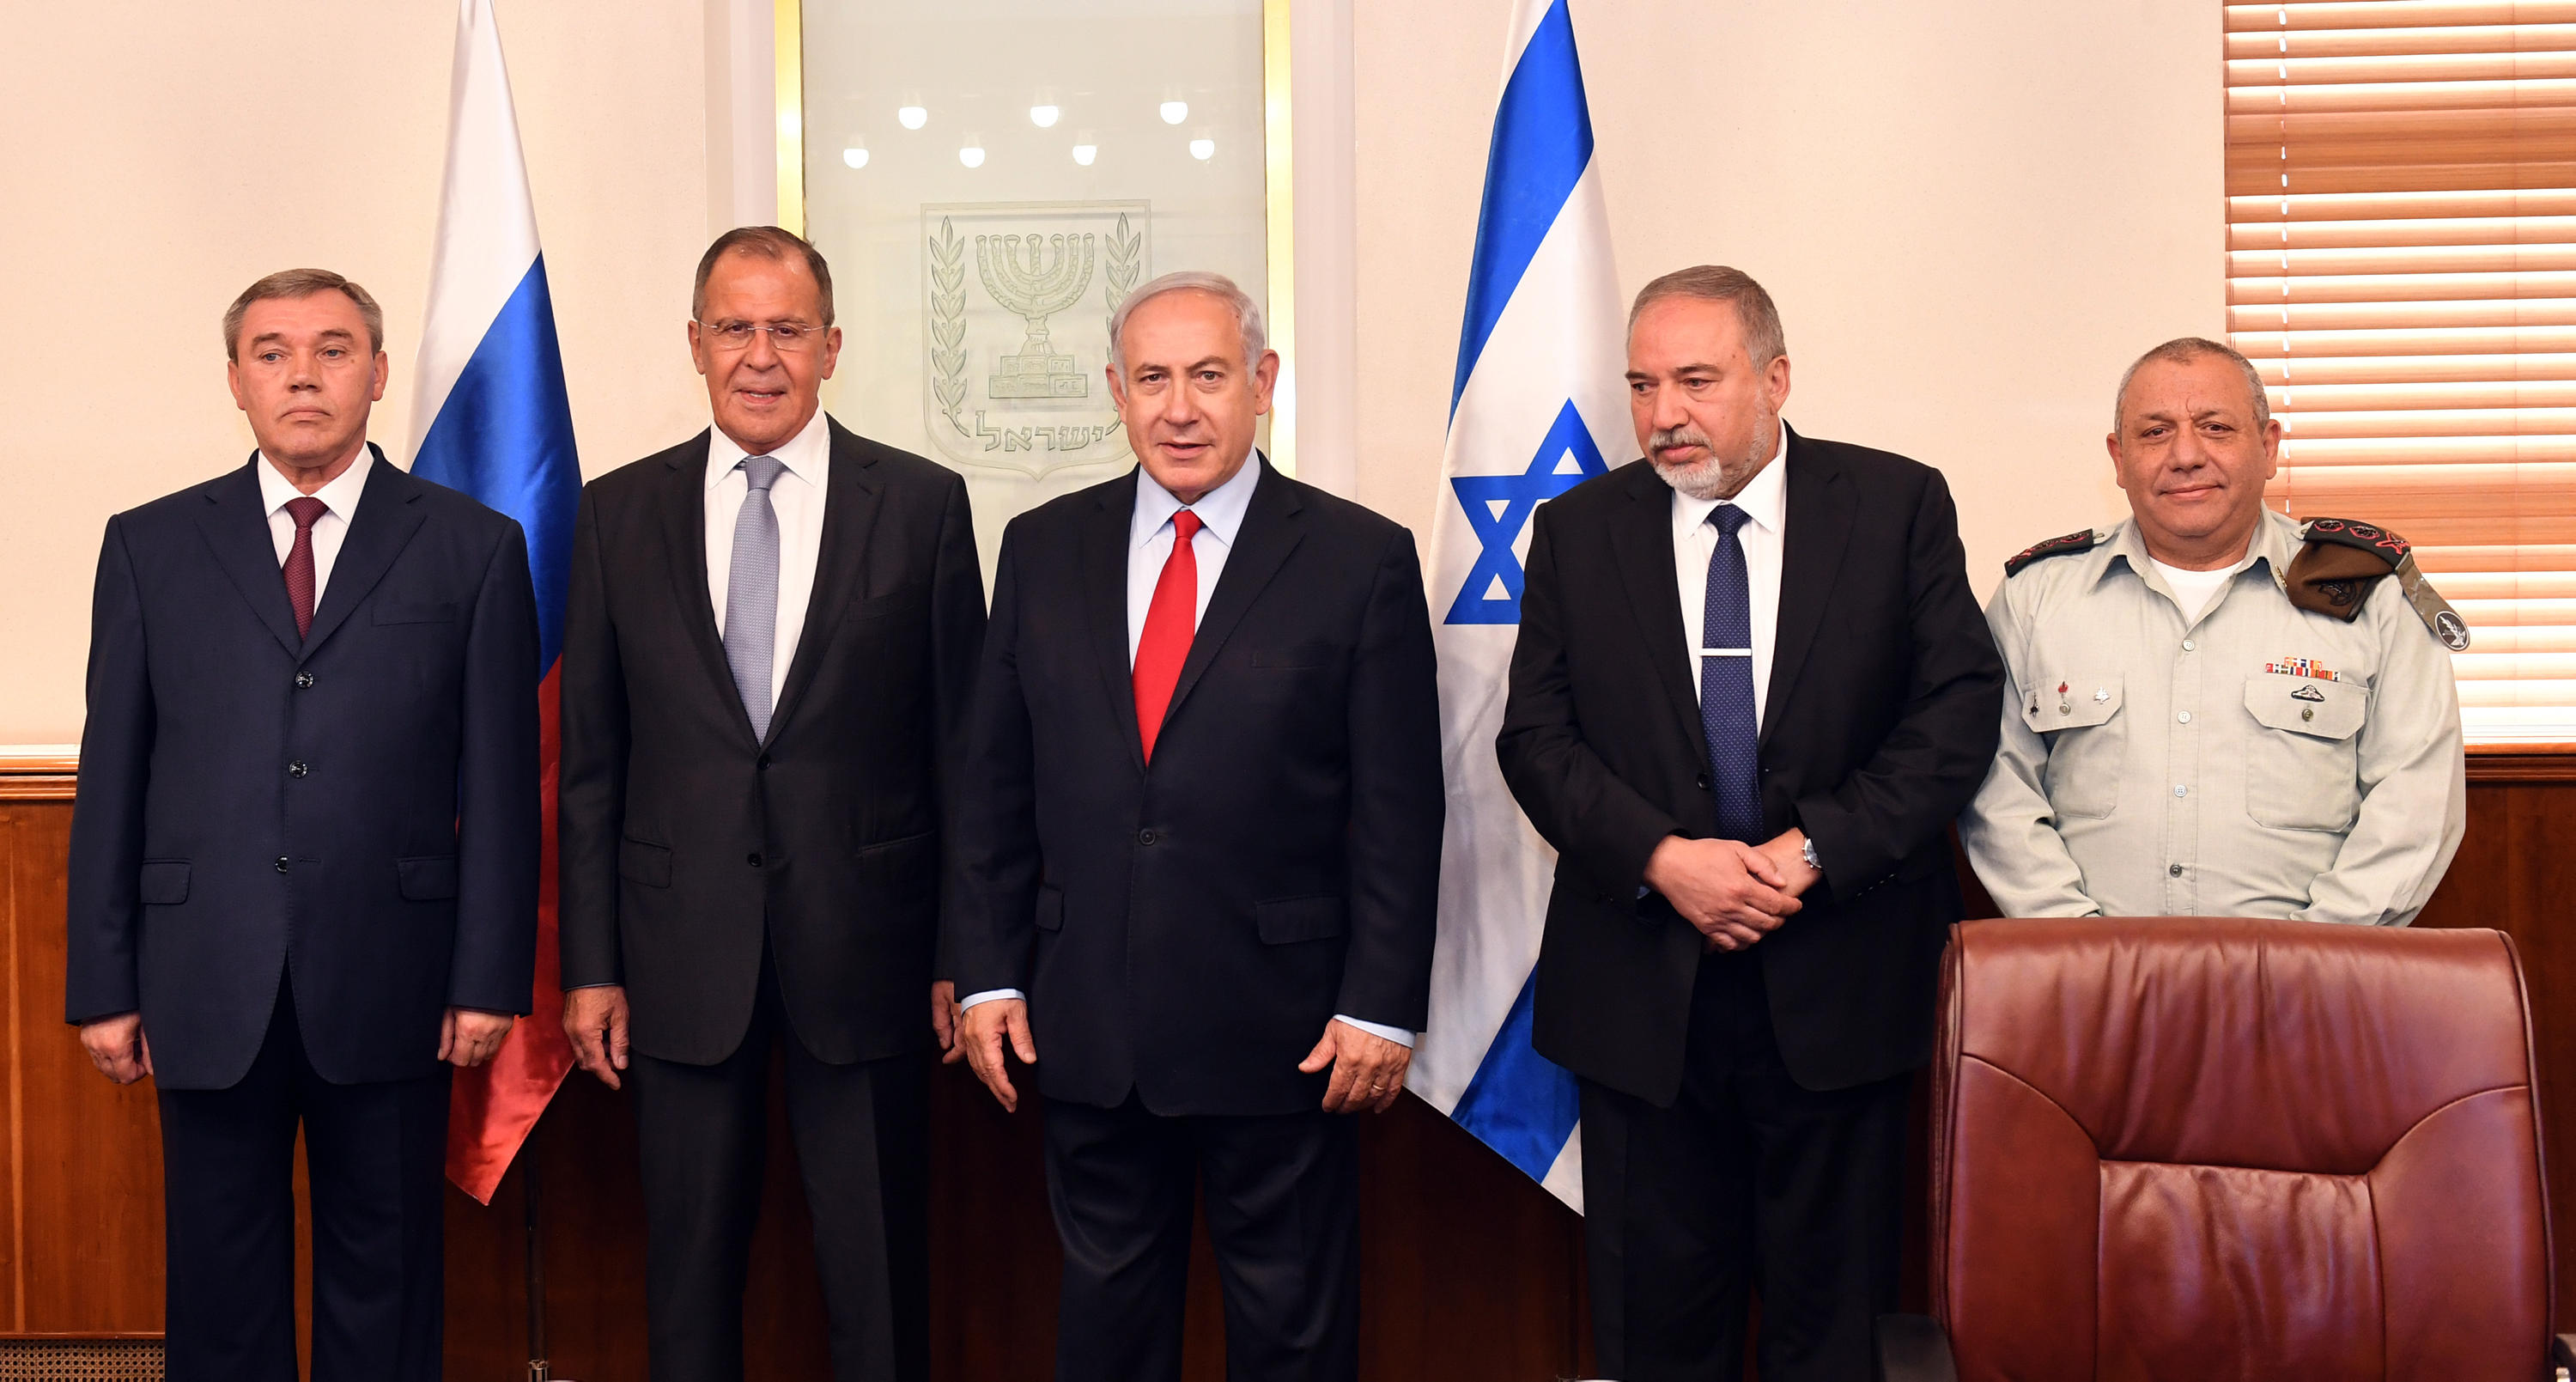 PM Netanyahu meets with senior Russian delegation